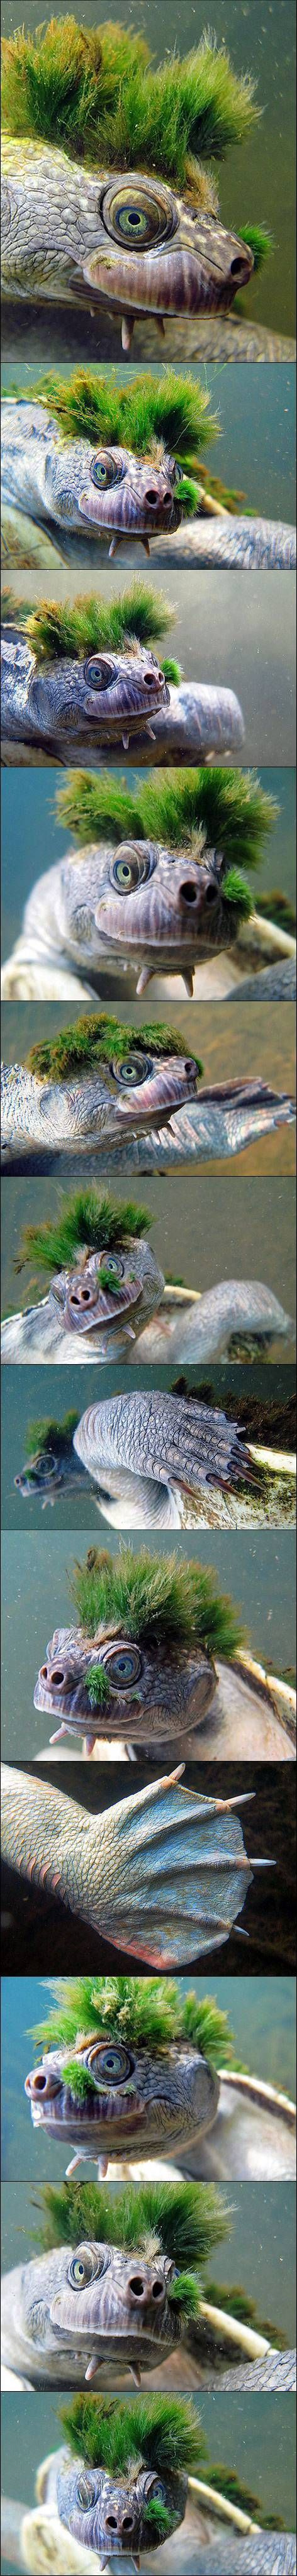 The Mary River Turtle (Elusor macrurus) aka the Green Hair Turtle. #animals #turtle